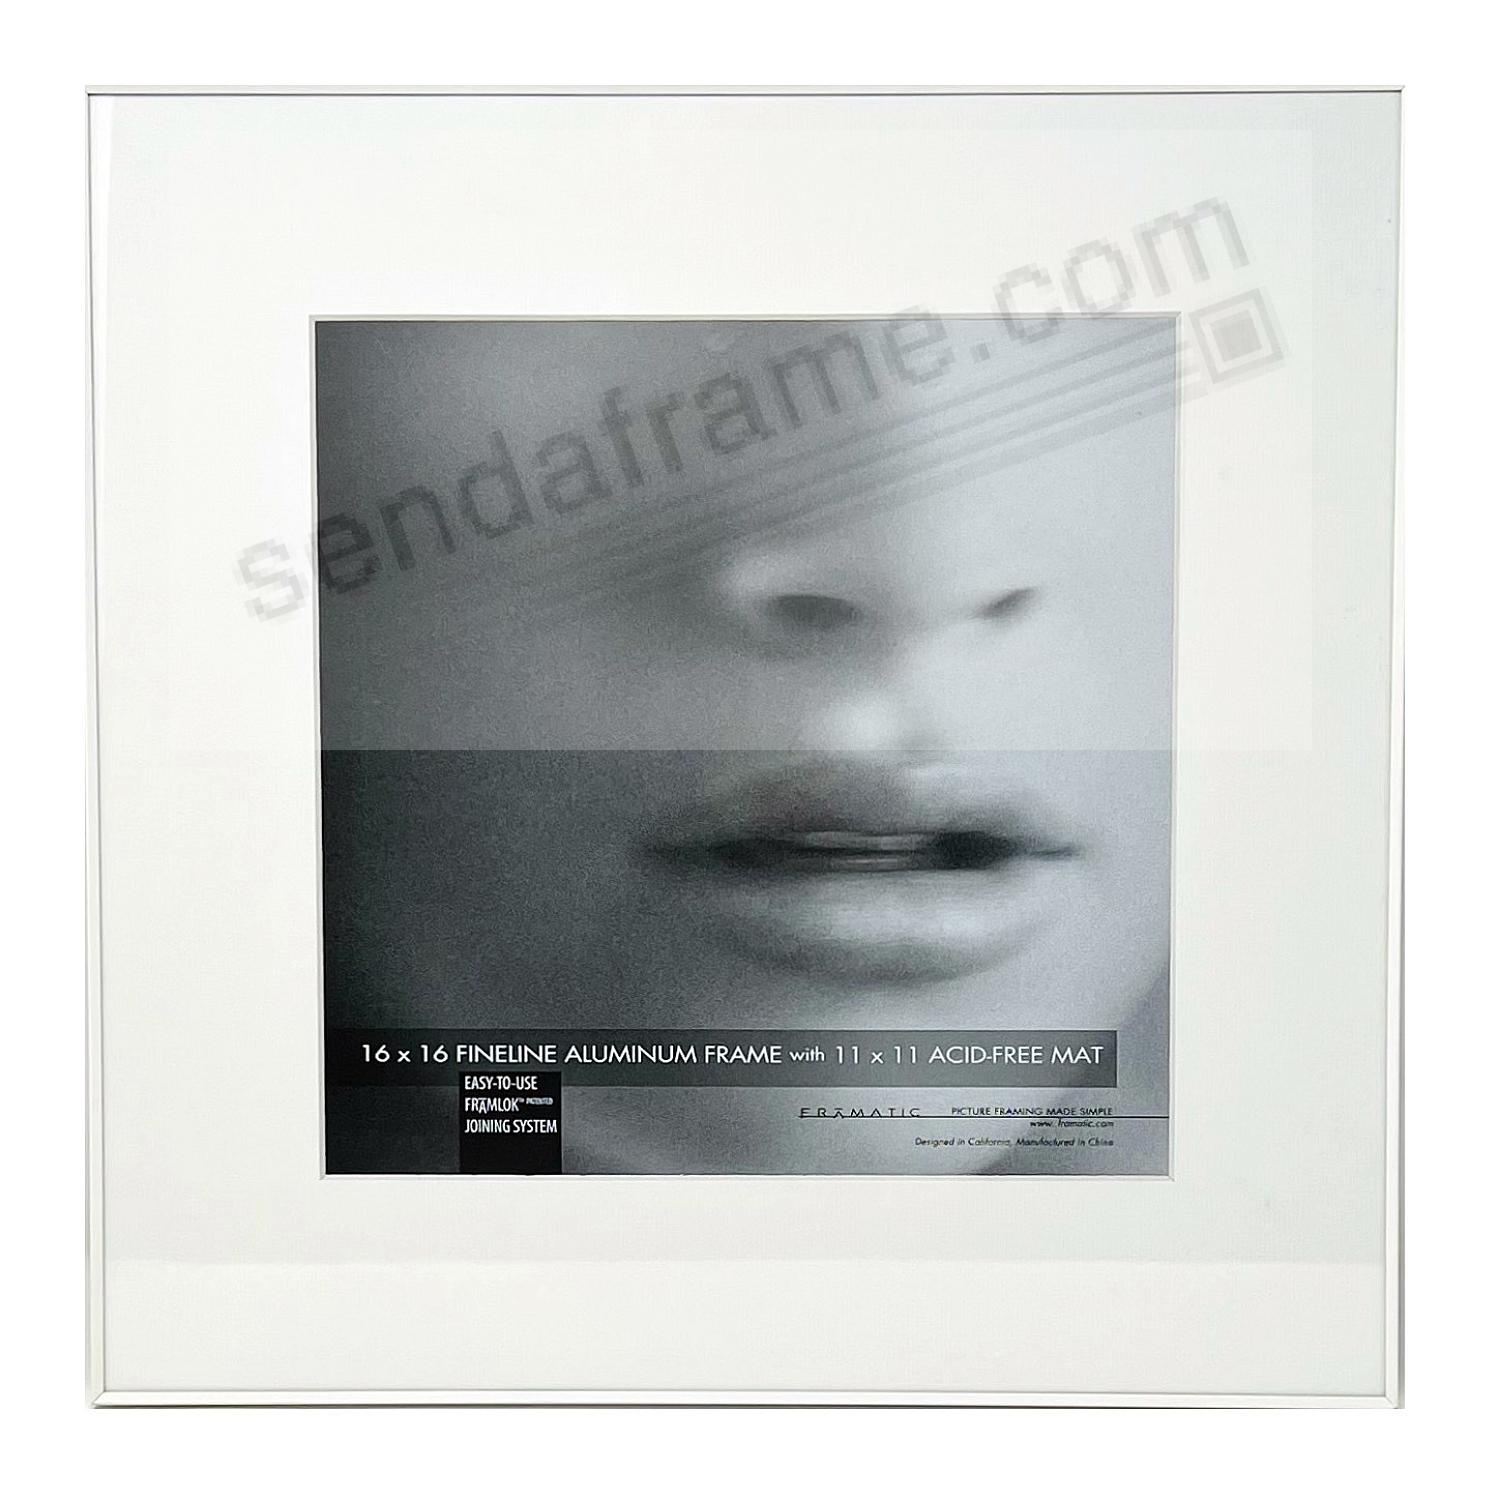 FINELINE White Aluminum 16x16/11x11 by Framatic®